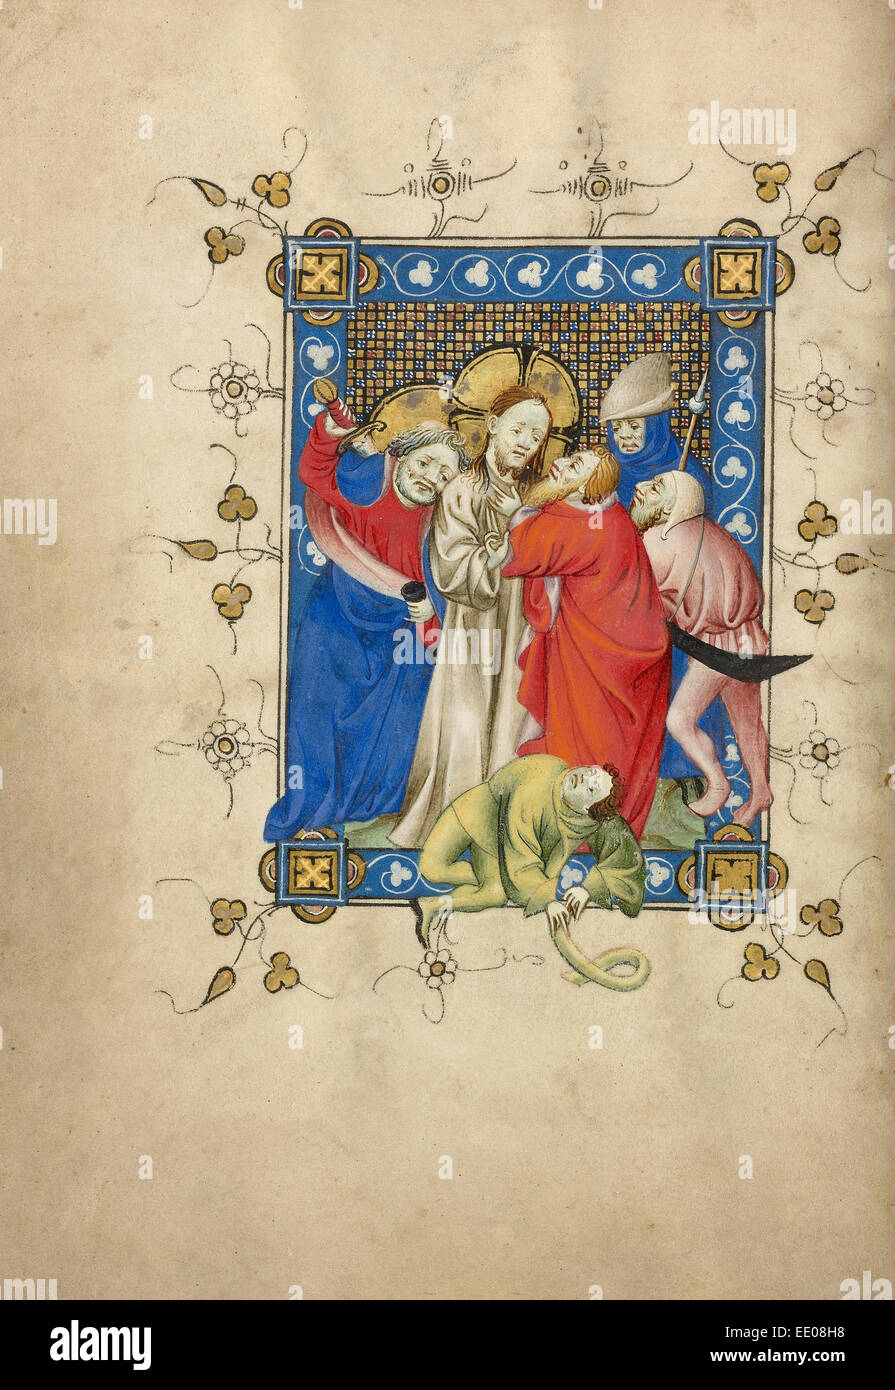 The Betrayal of Christ; Masters of Dirc van Delf, Dutch, active about 1400 - about 1410; Utrecht (probably), Netherlands, - Stock Image